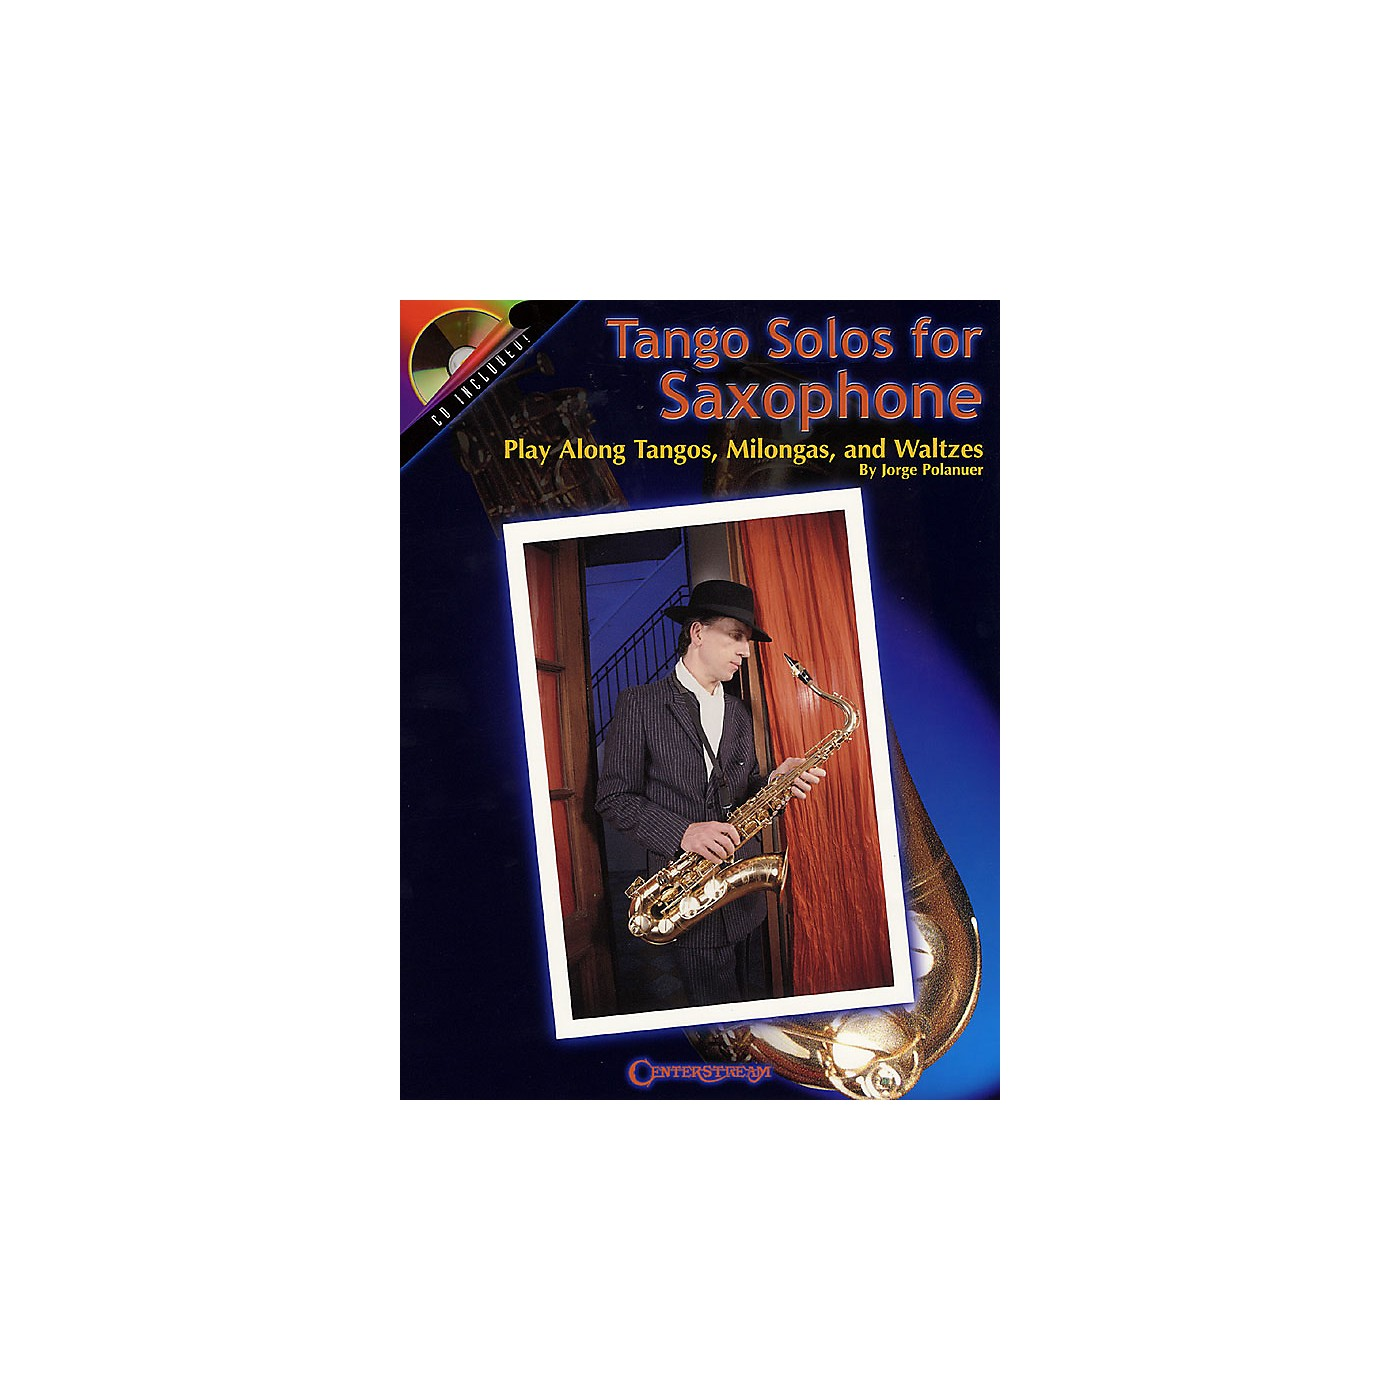 Centerstream Publishing Tango Solos for Saxophone (Play-Along Tangos, Milongas and Waltzes) Instrumental Series Book with CD thumbnail